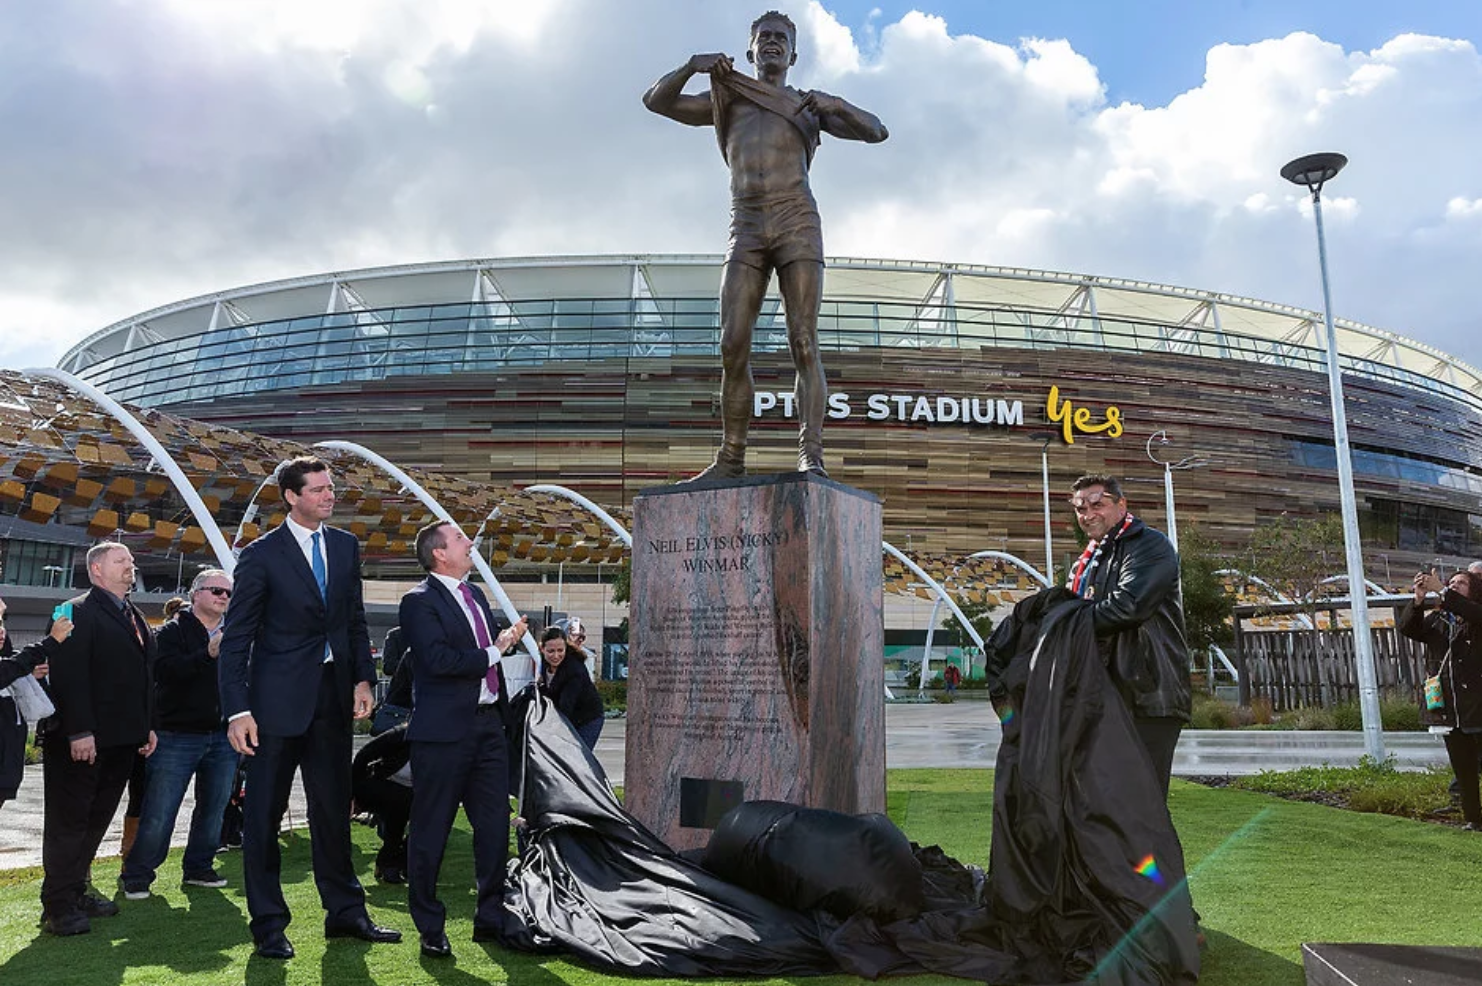 The statue is unveiled by CEO of the AFL Gillon McLachlan, the Premier of Western Australia Mark McGowan, and the great man himself.